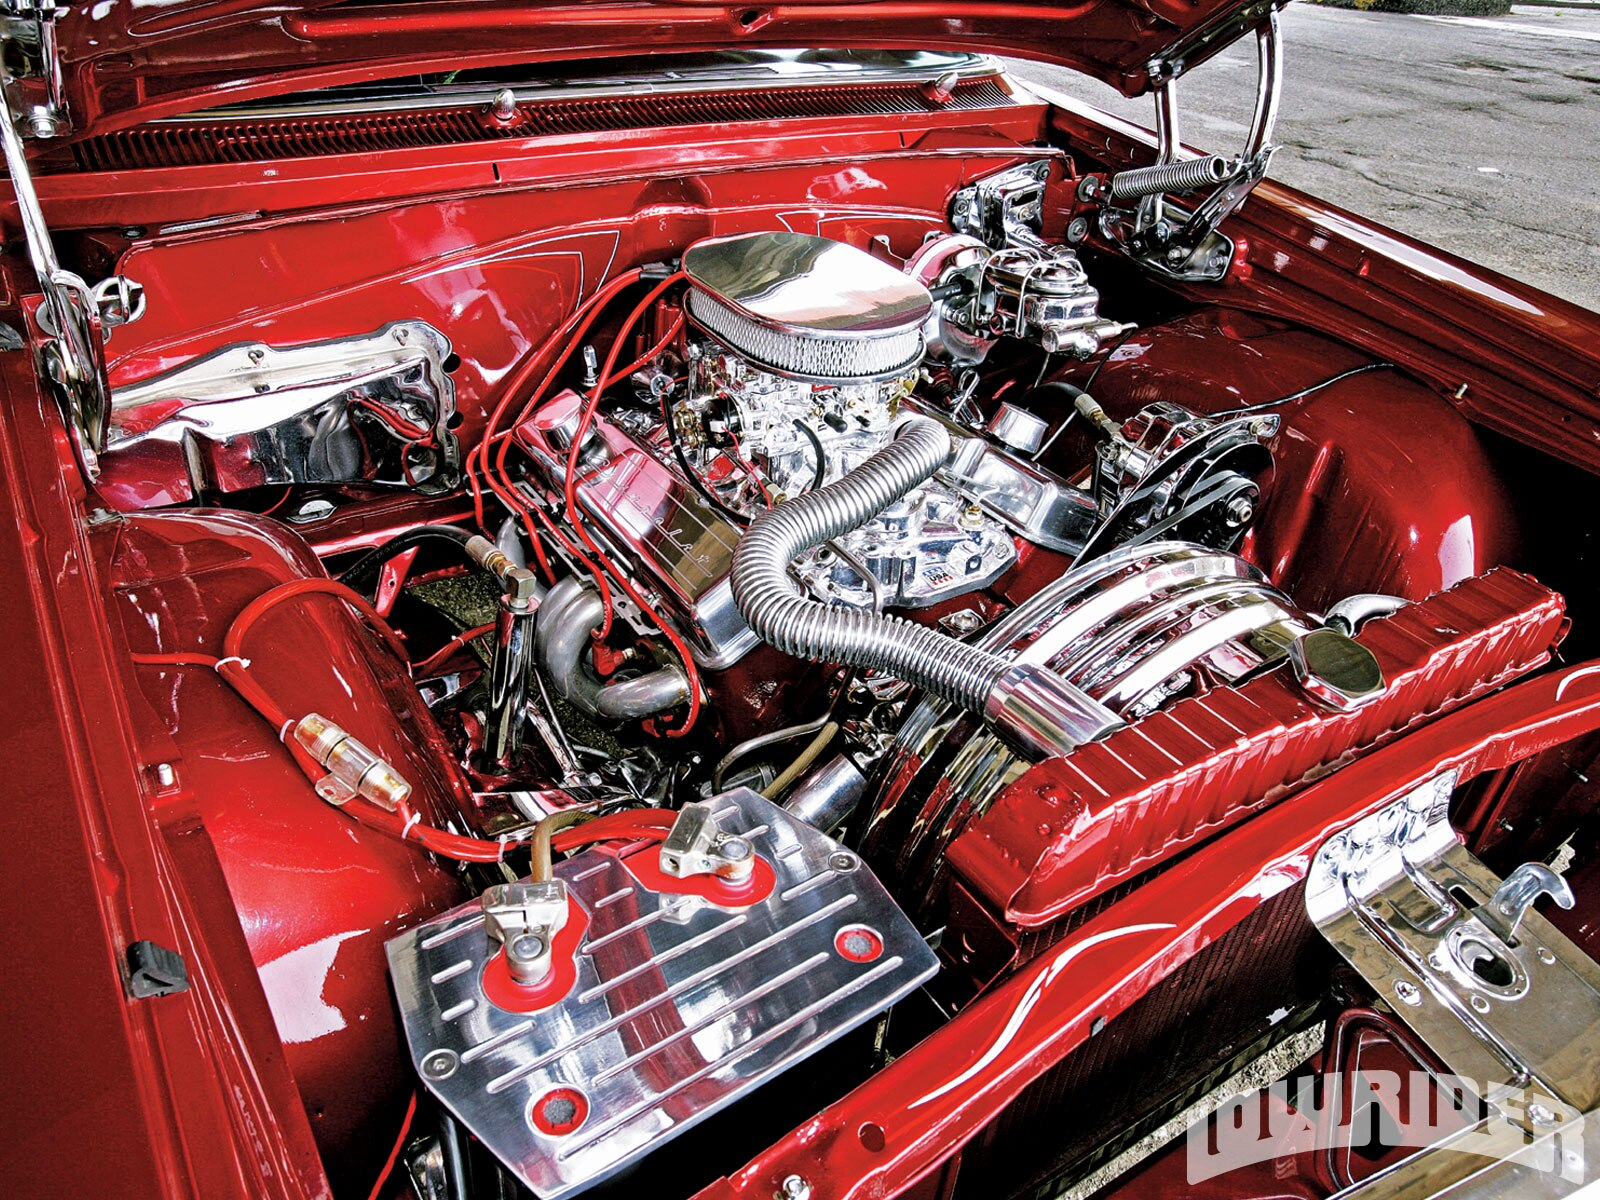 1964 Chevrolet Impala Pit Bull Four Pump Set Up